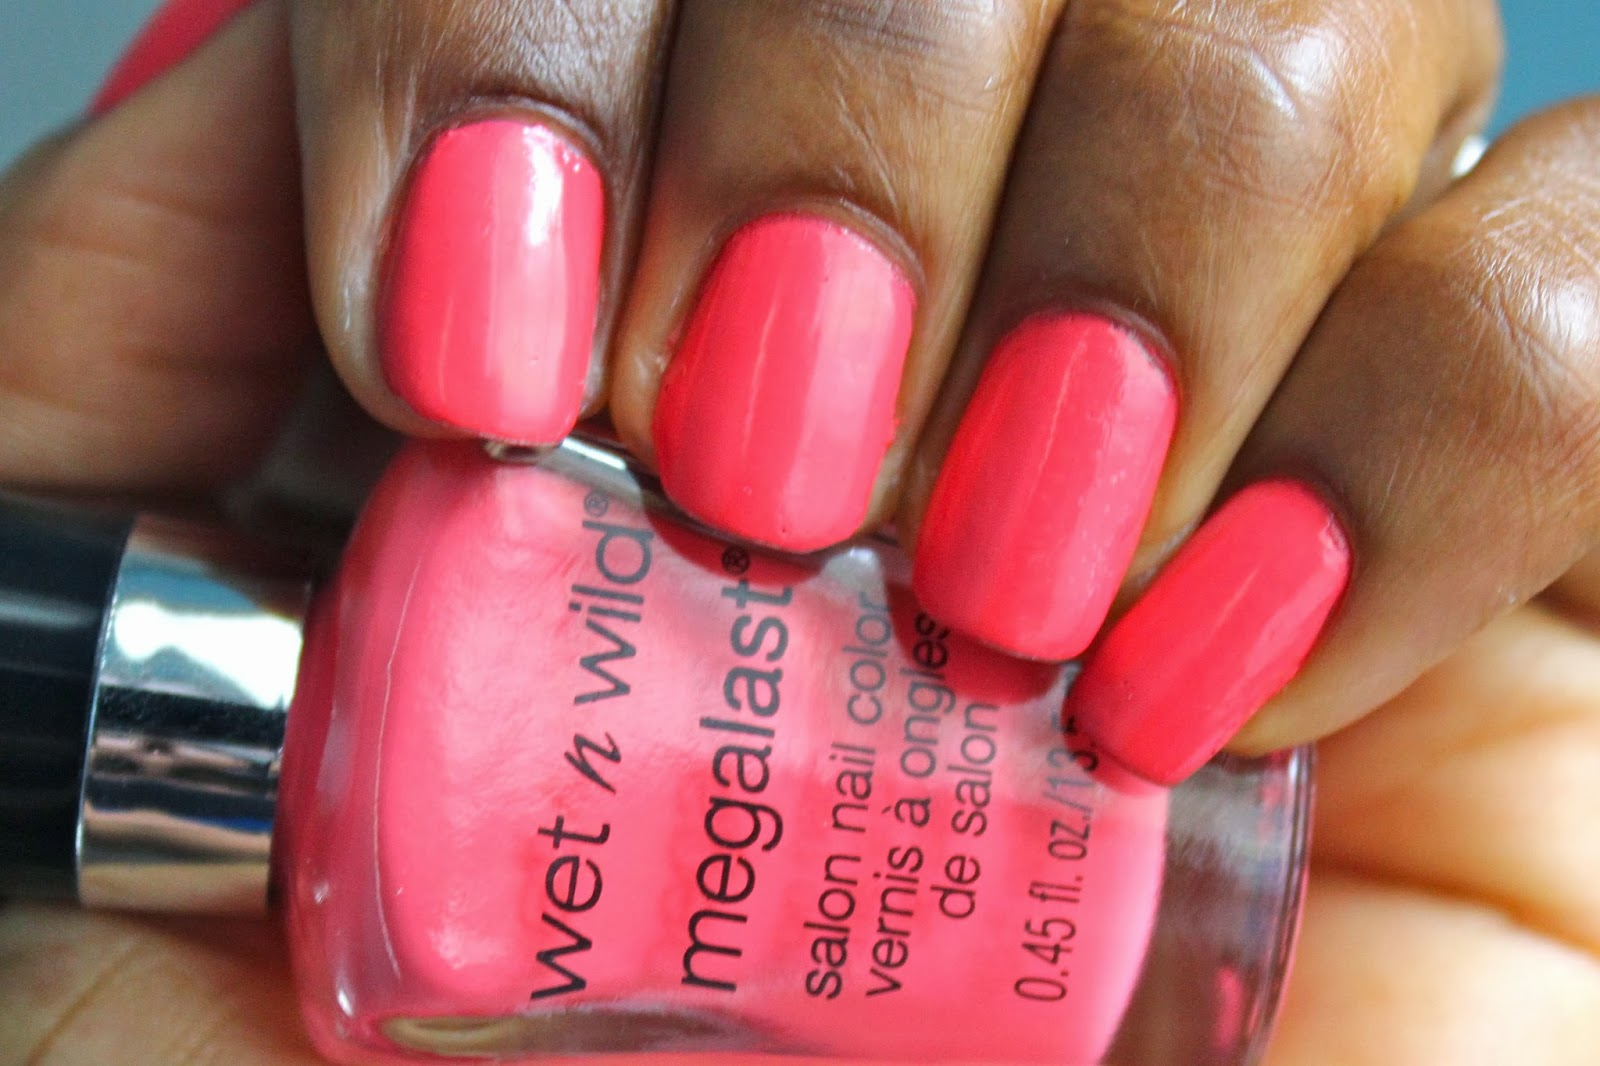 Wet N Wild Megalast Salon Nail Color Tropicalia Daftar Update Candylicious 210c